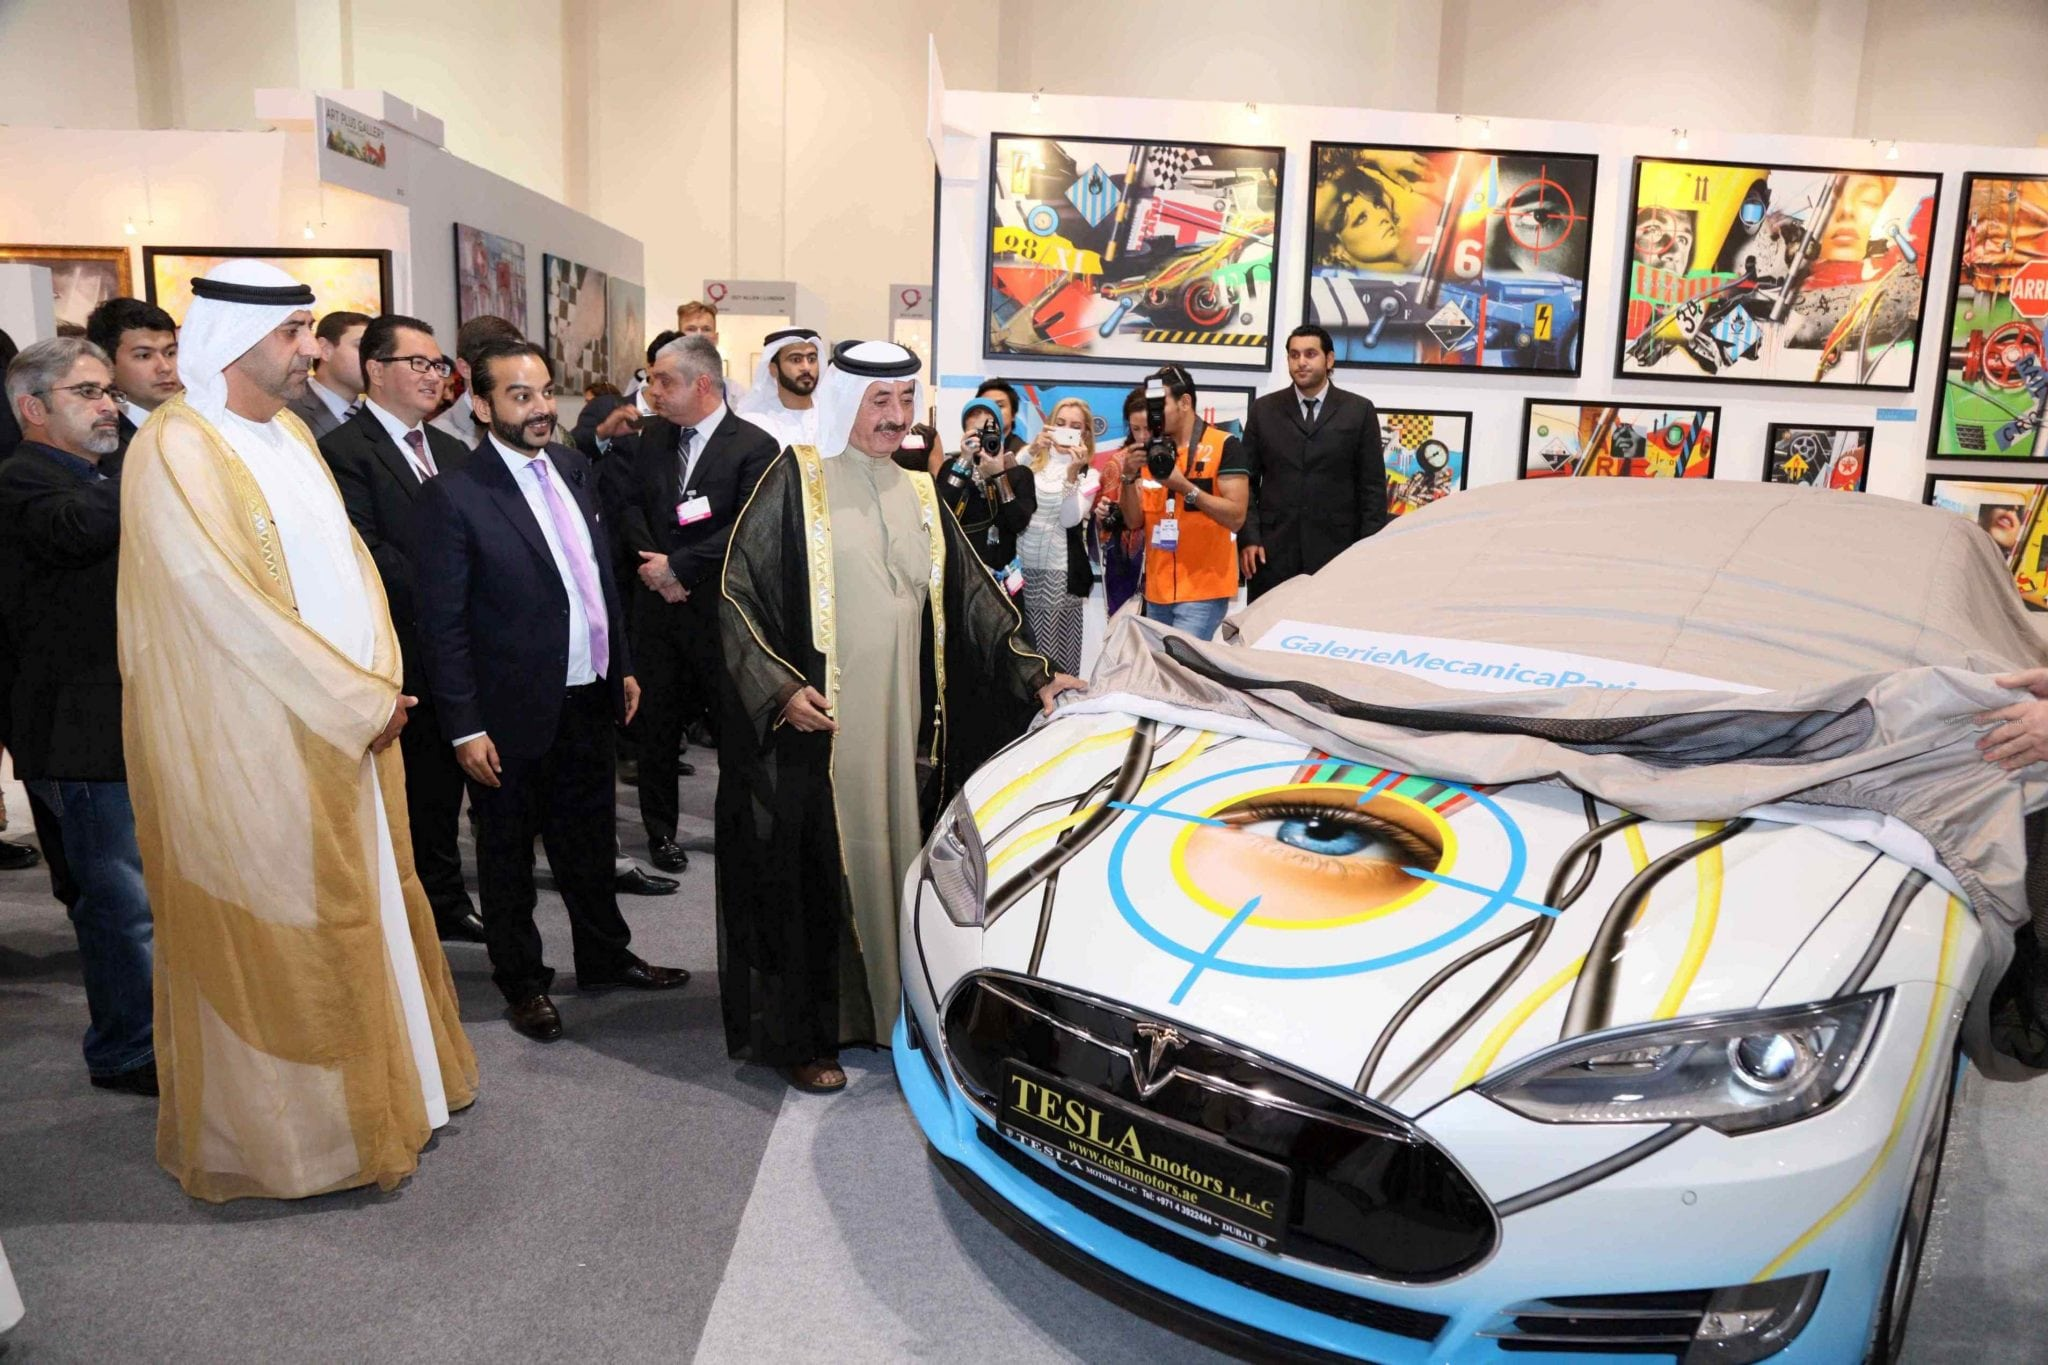 Tesla Art Car Unveiled at World Art Dubai